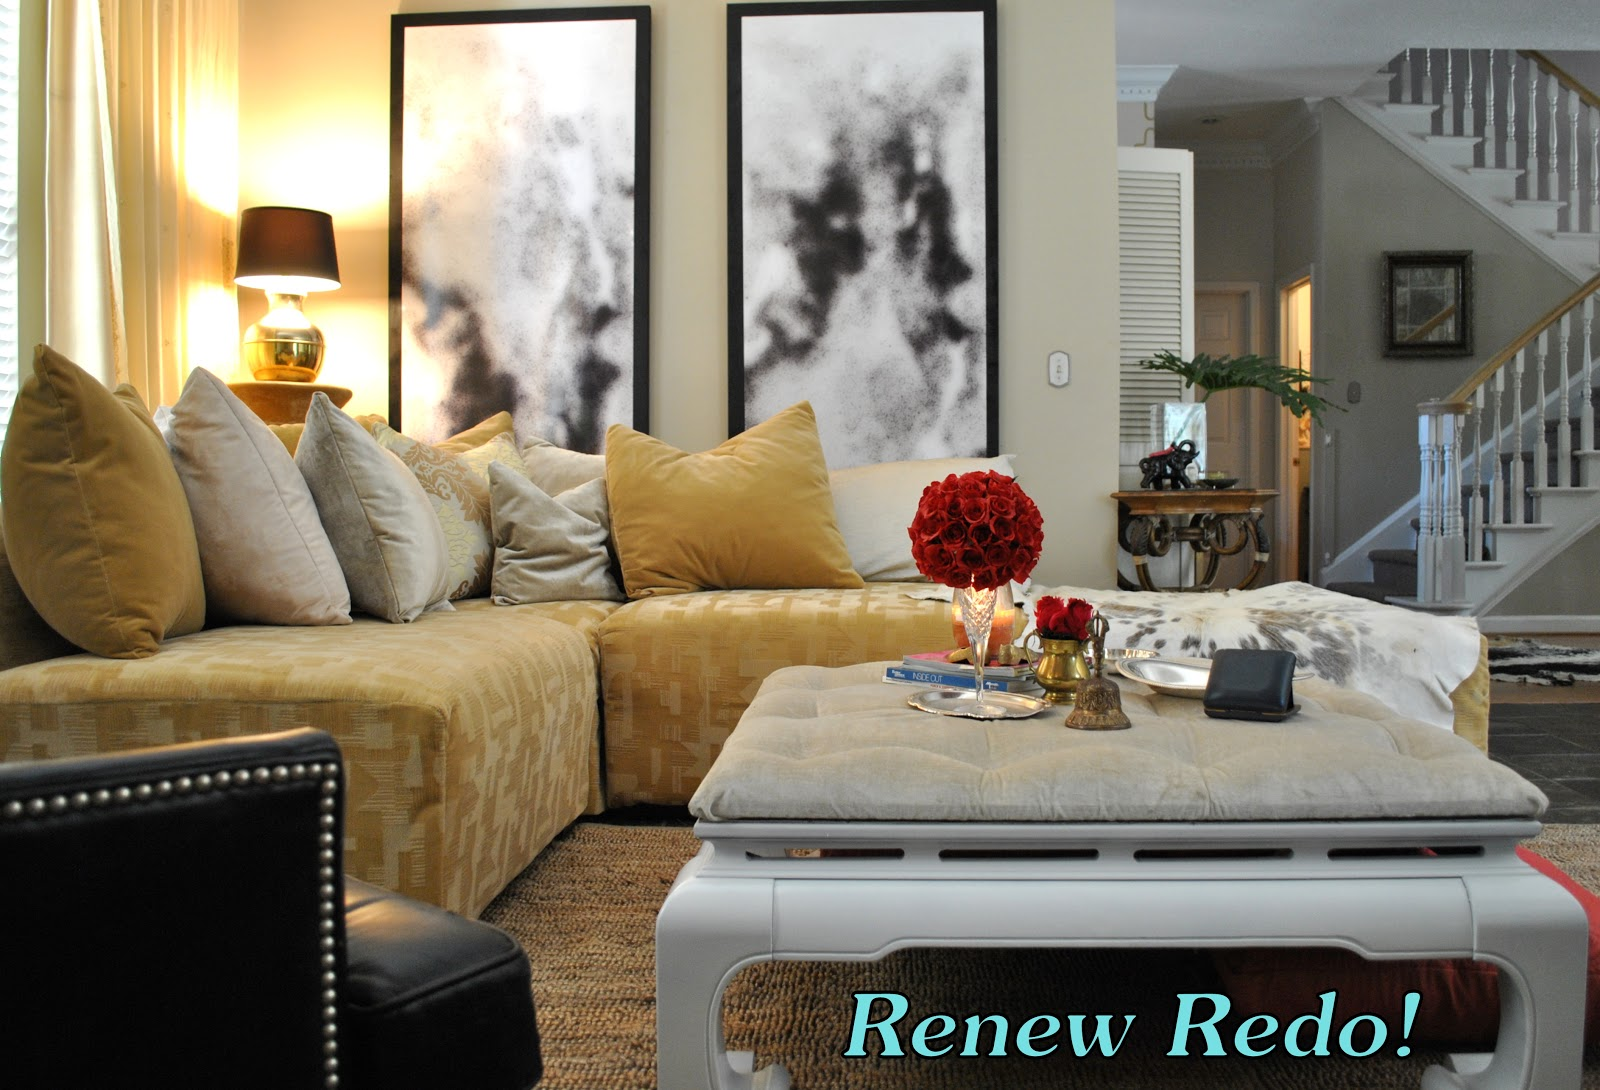 ReNew ReDo!: Gold, Silver, Black, White... and Pink ...